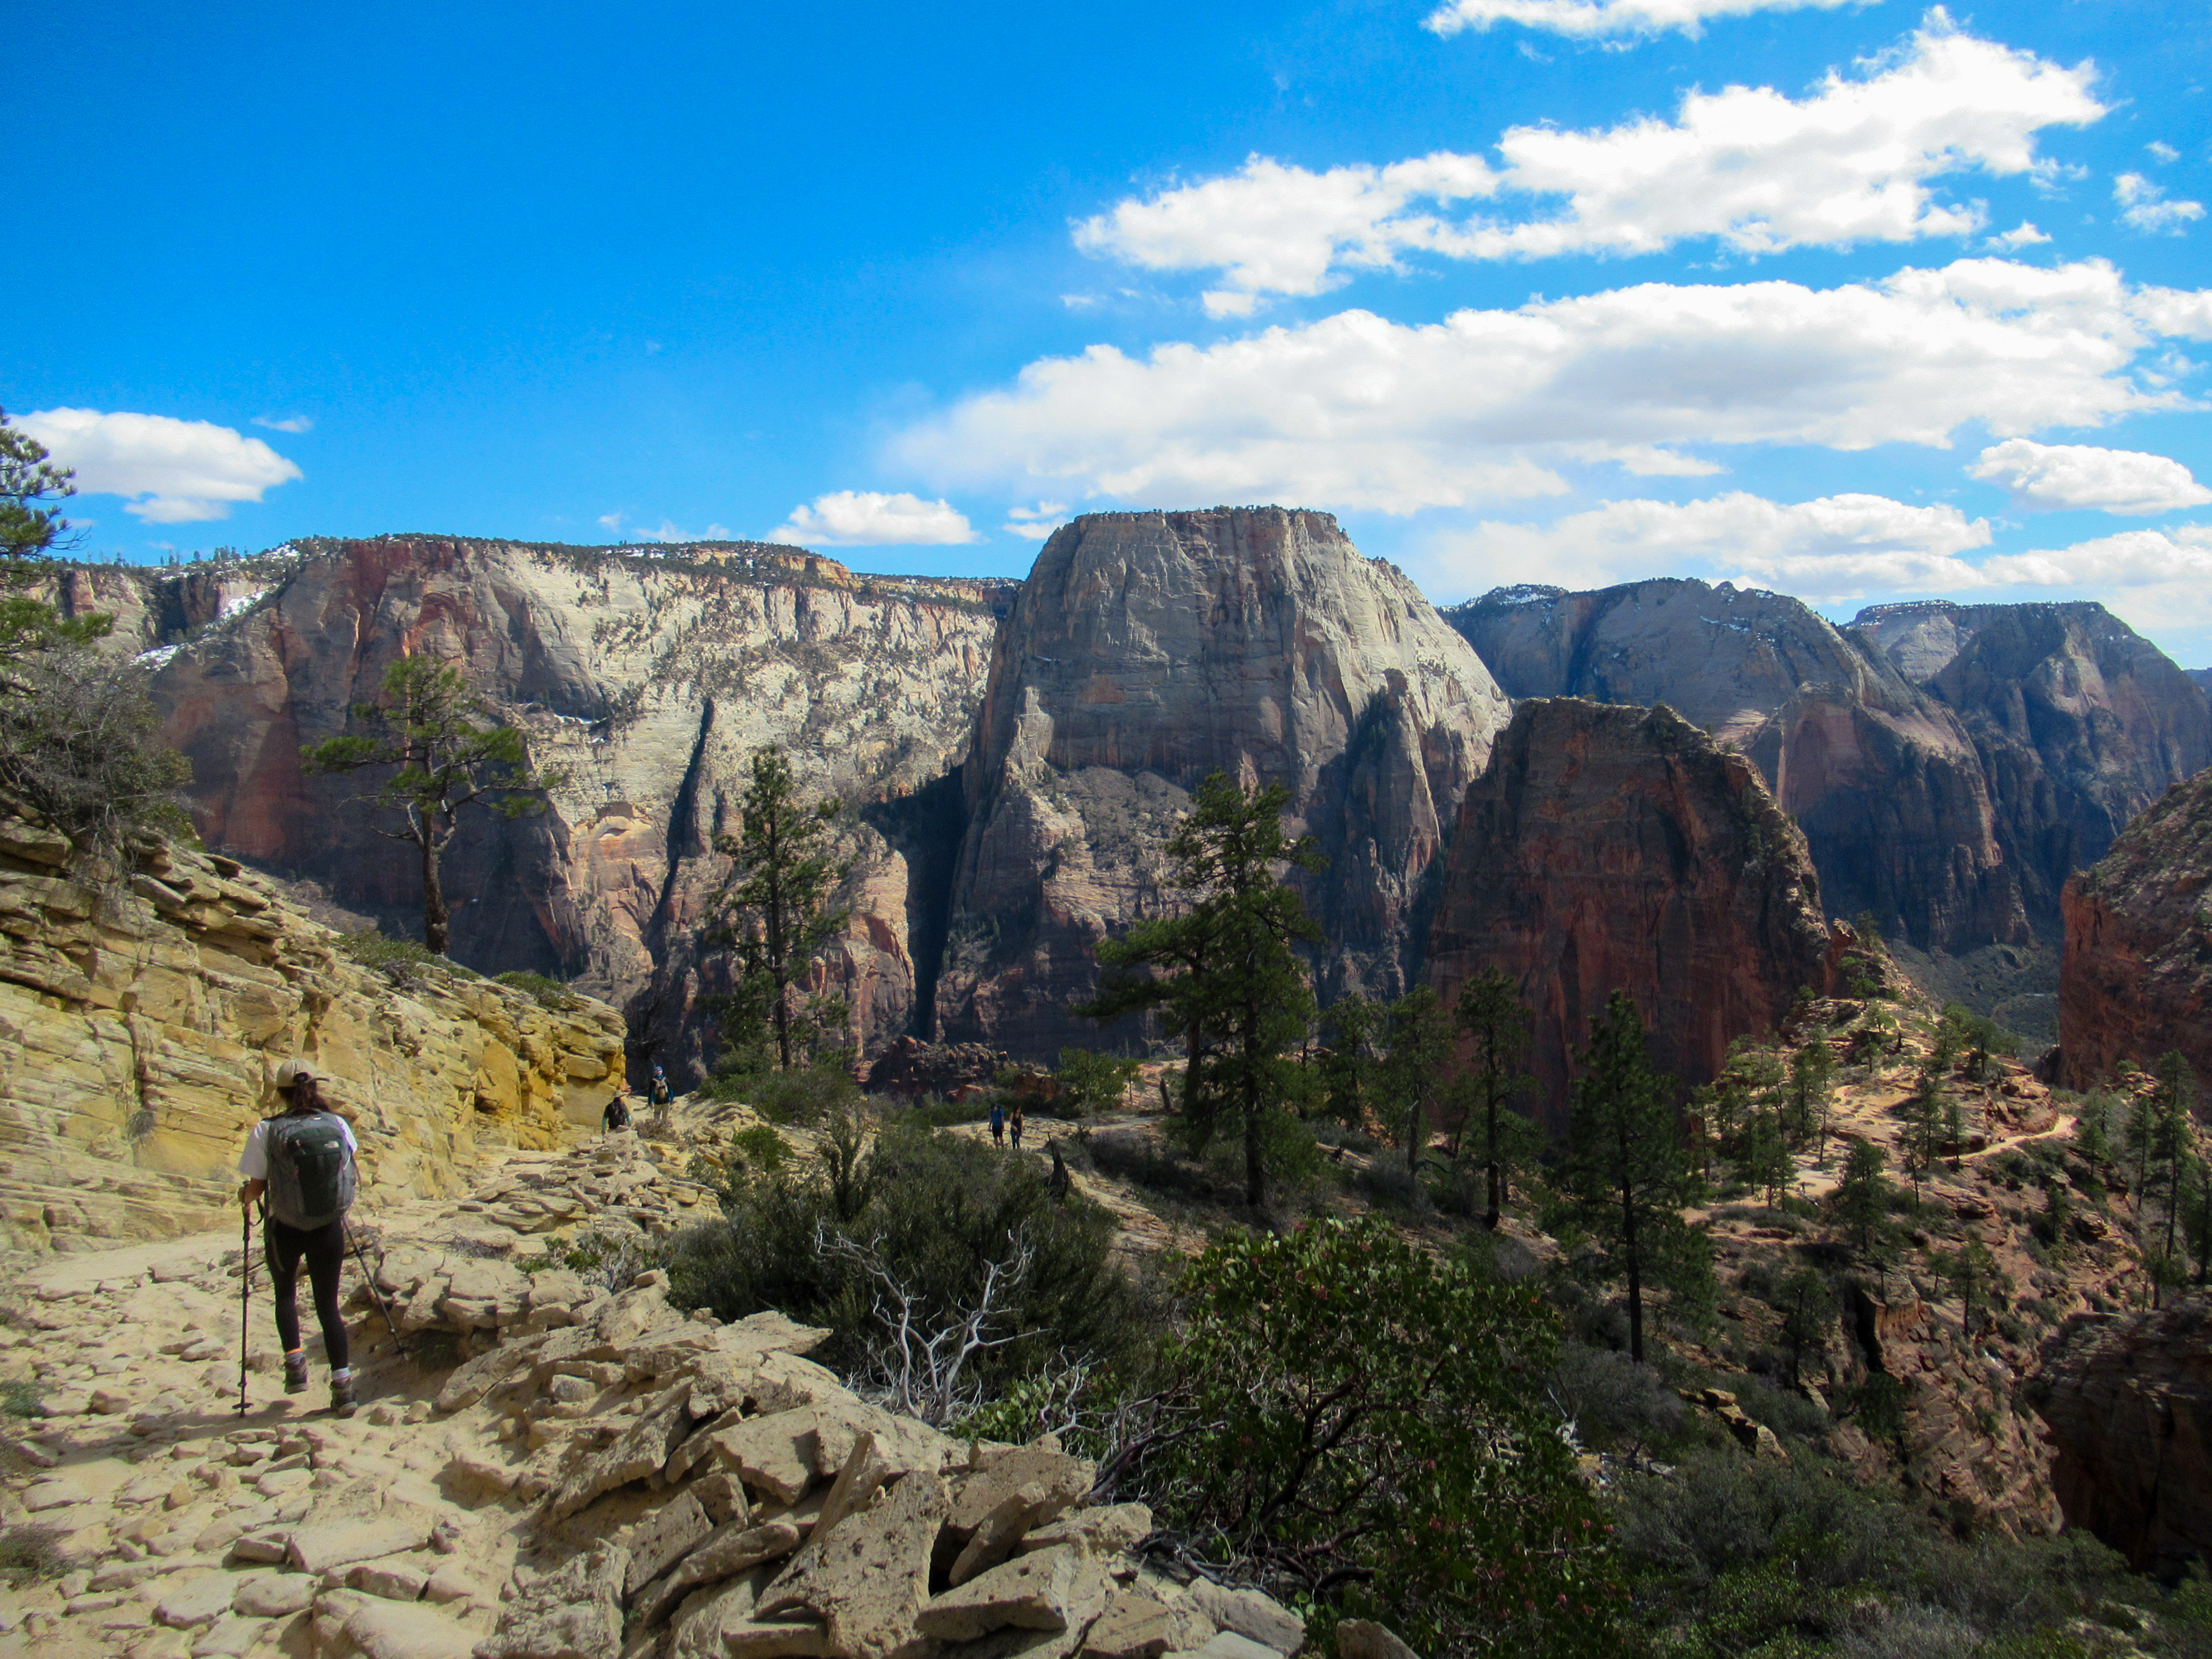 Hiking into Zion Canyon with a view of Angels Landing.